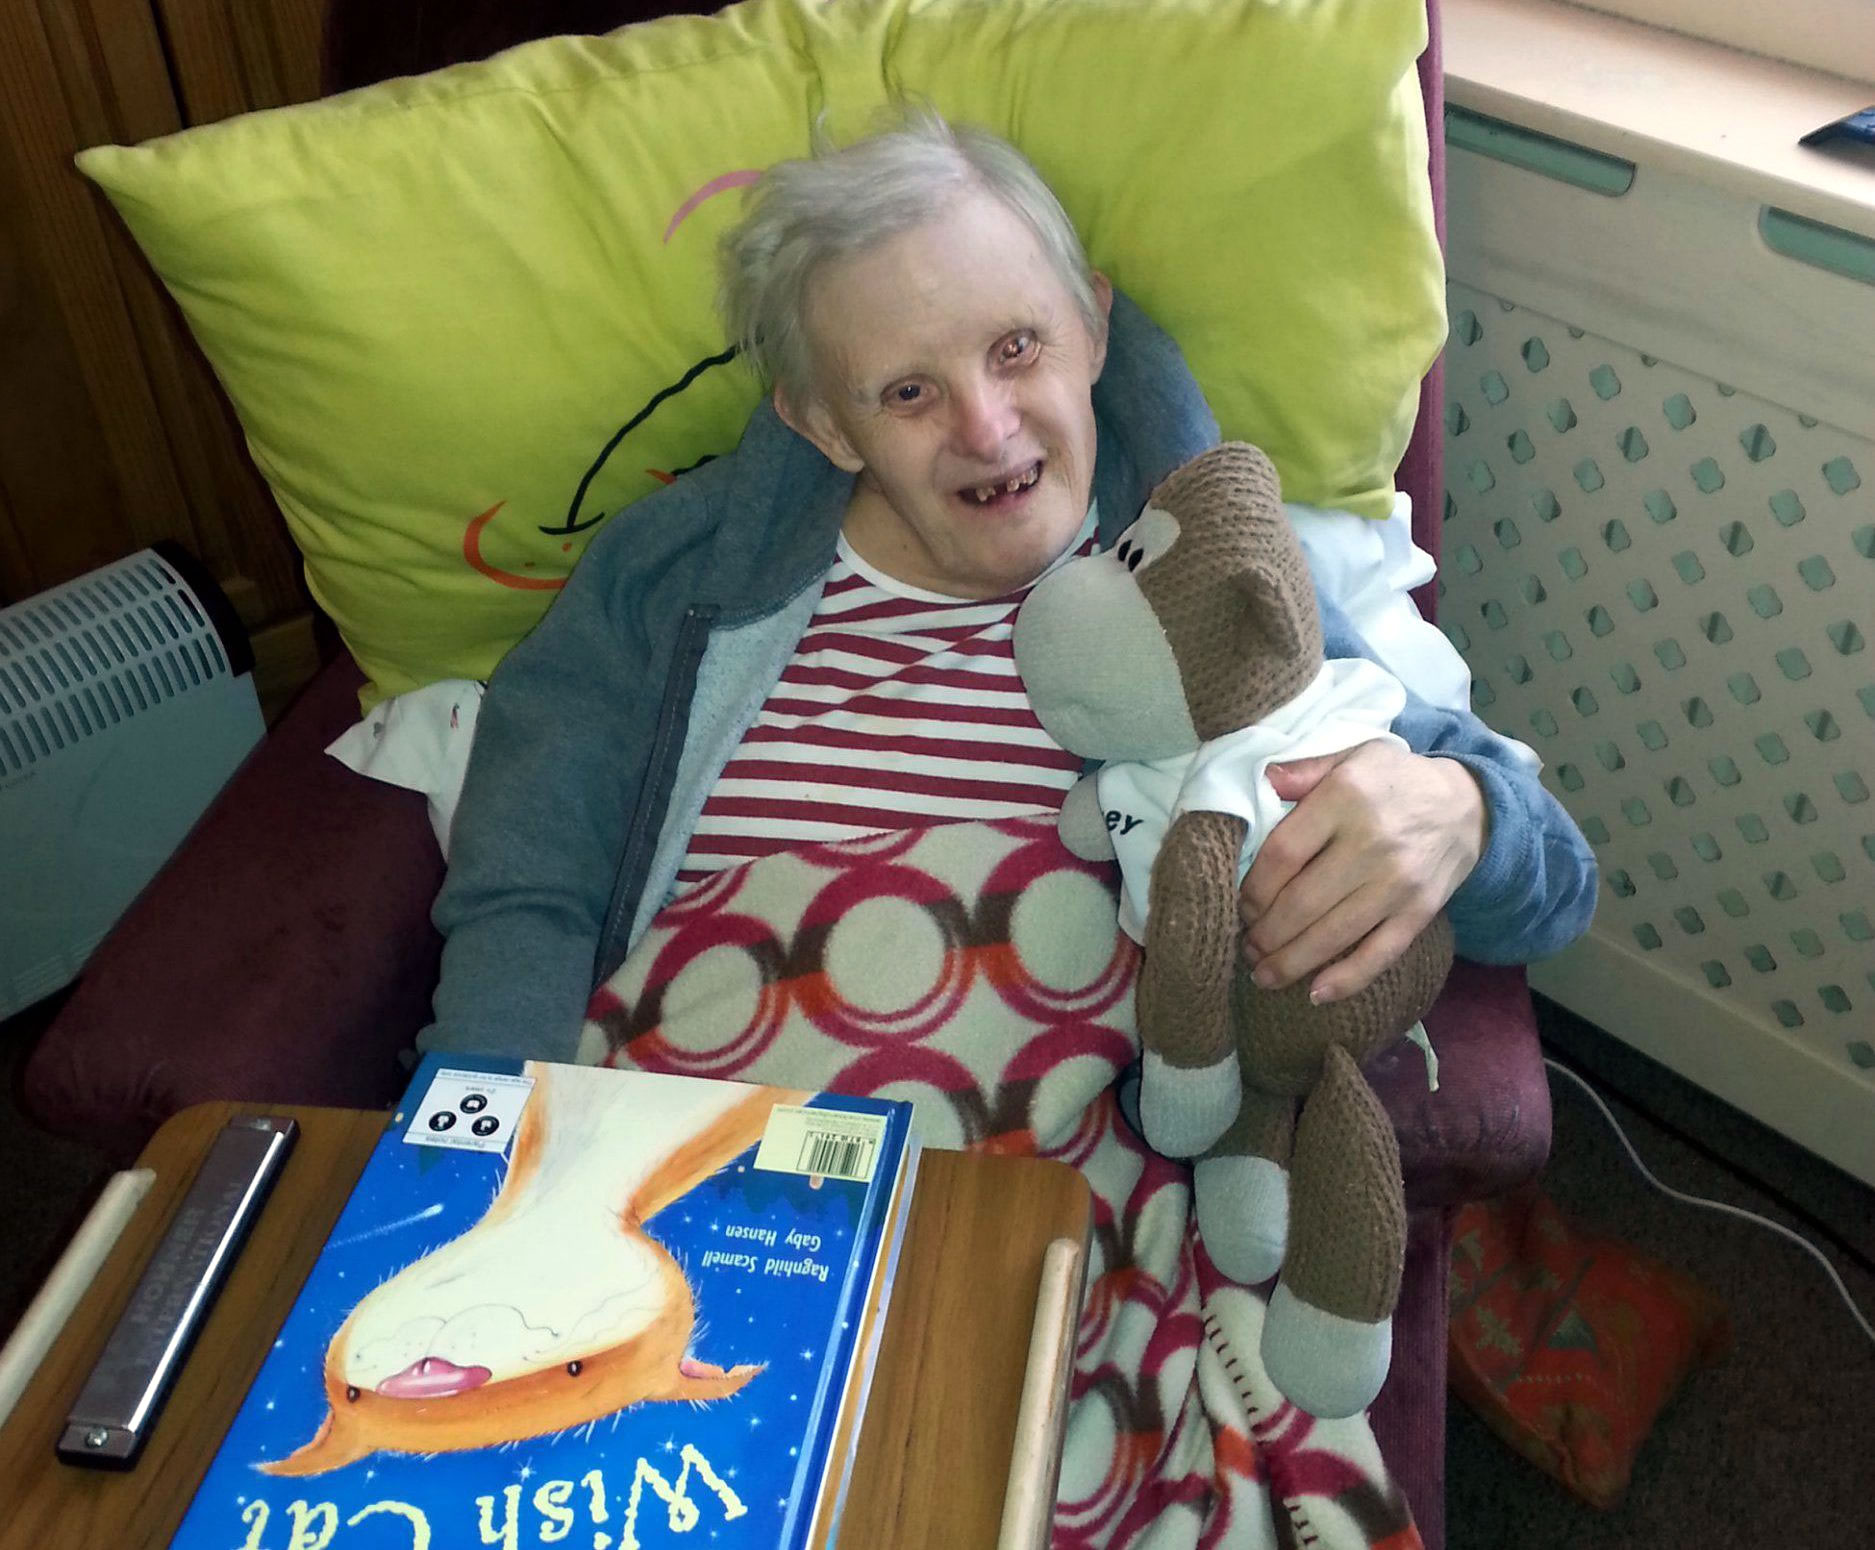 oldest living person with down u0026 39 s syndrome  world record set by kenny cridge  video